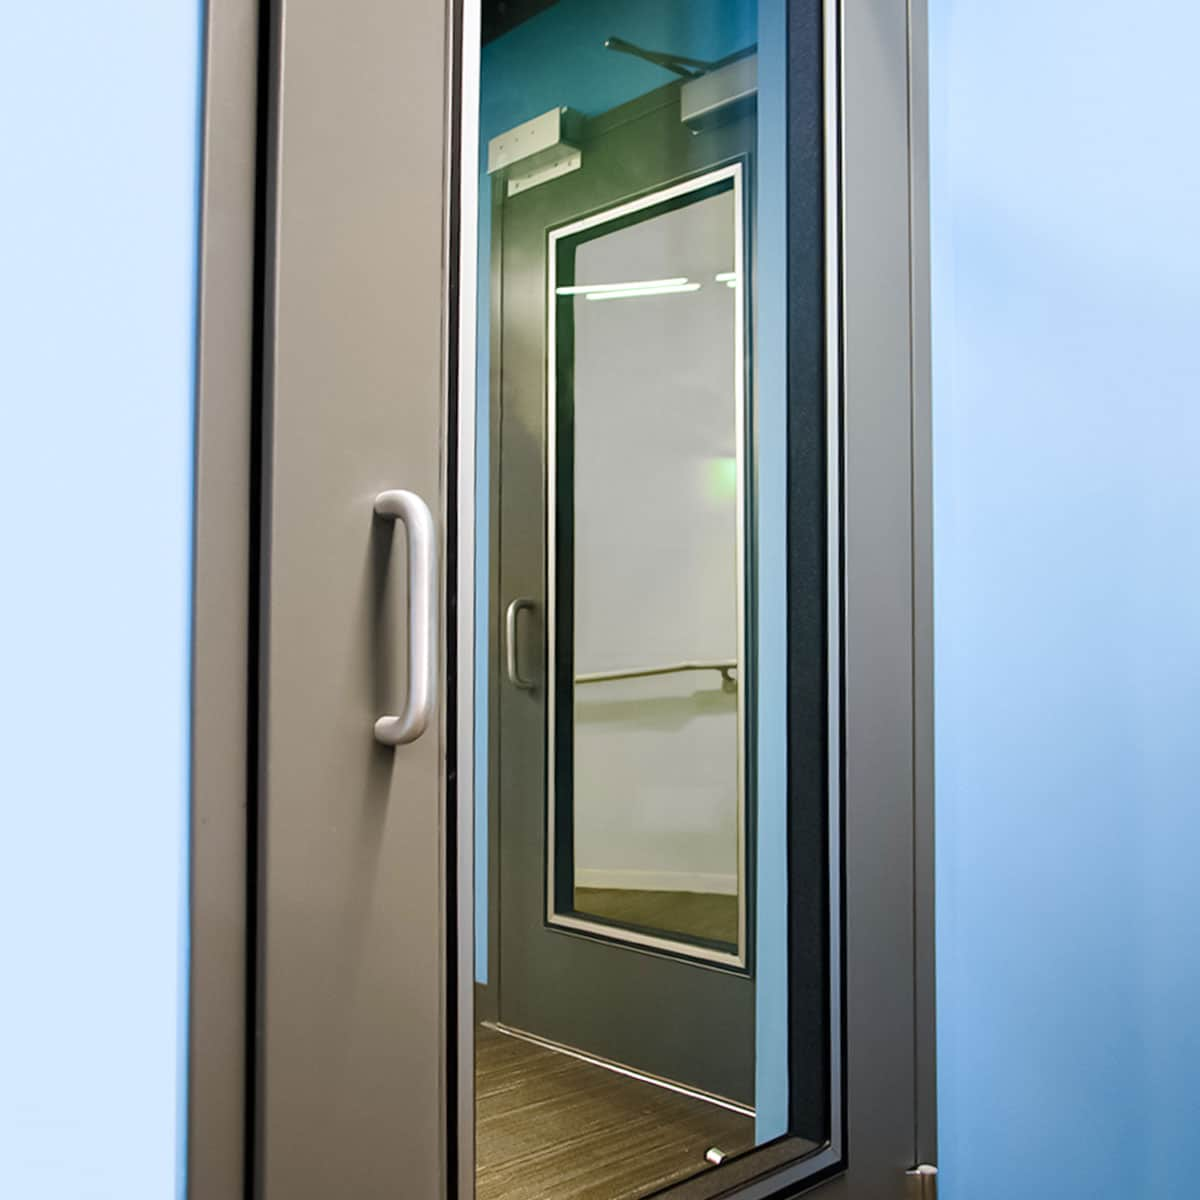 IAC Acoustics Noise-Lock® Door & IAC Acoustics Noise-Lock® Door | Acoustical Solutions